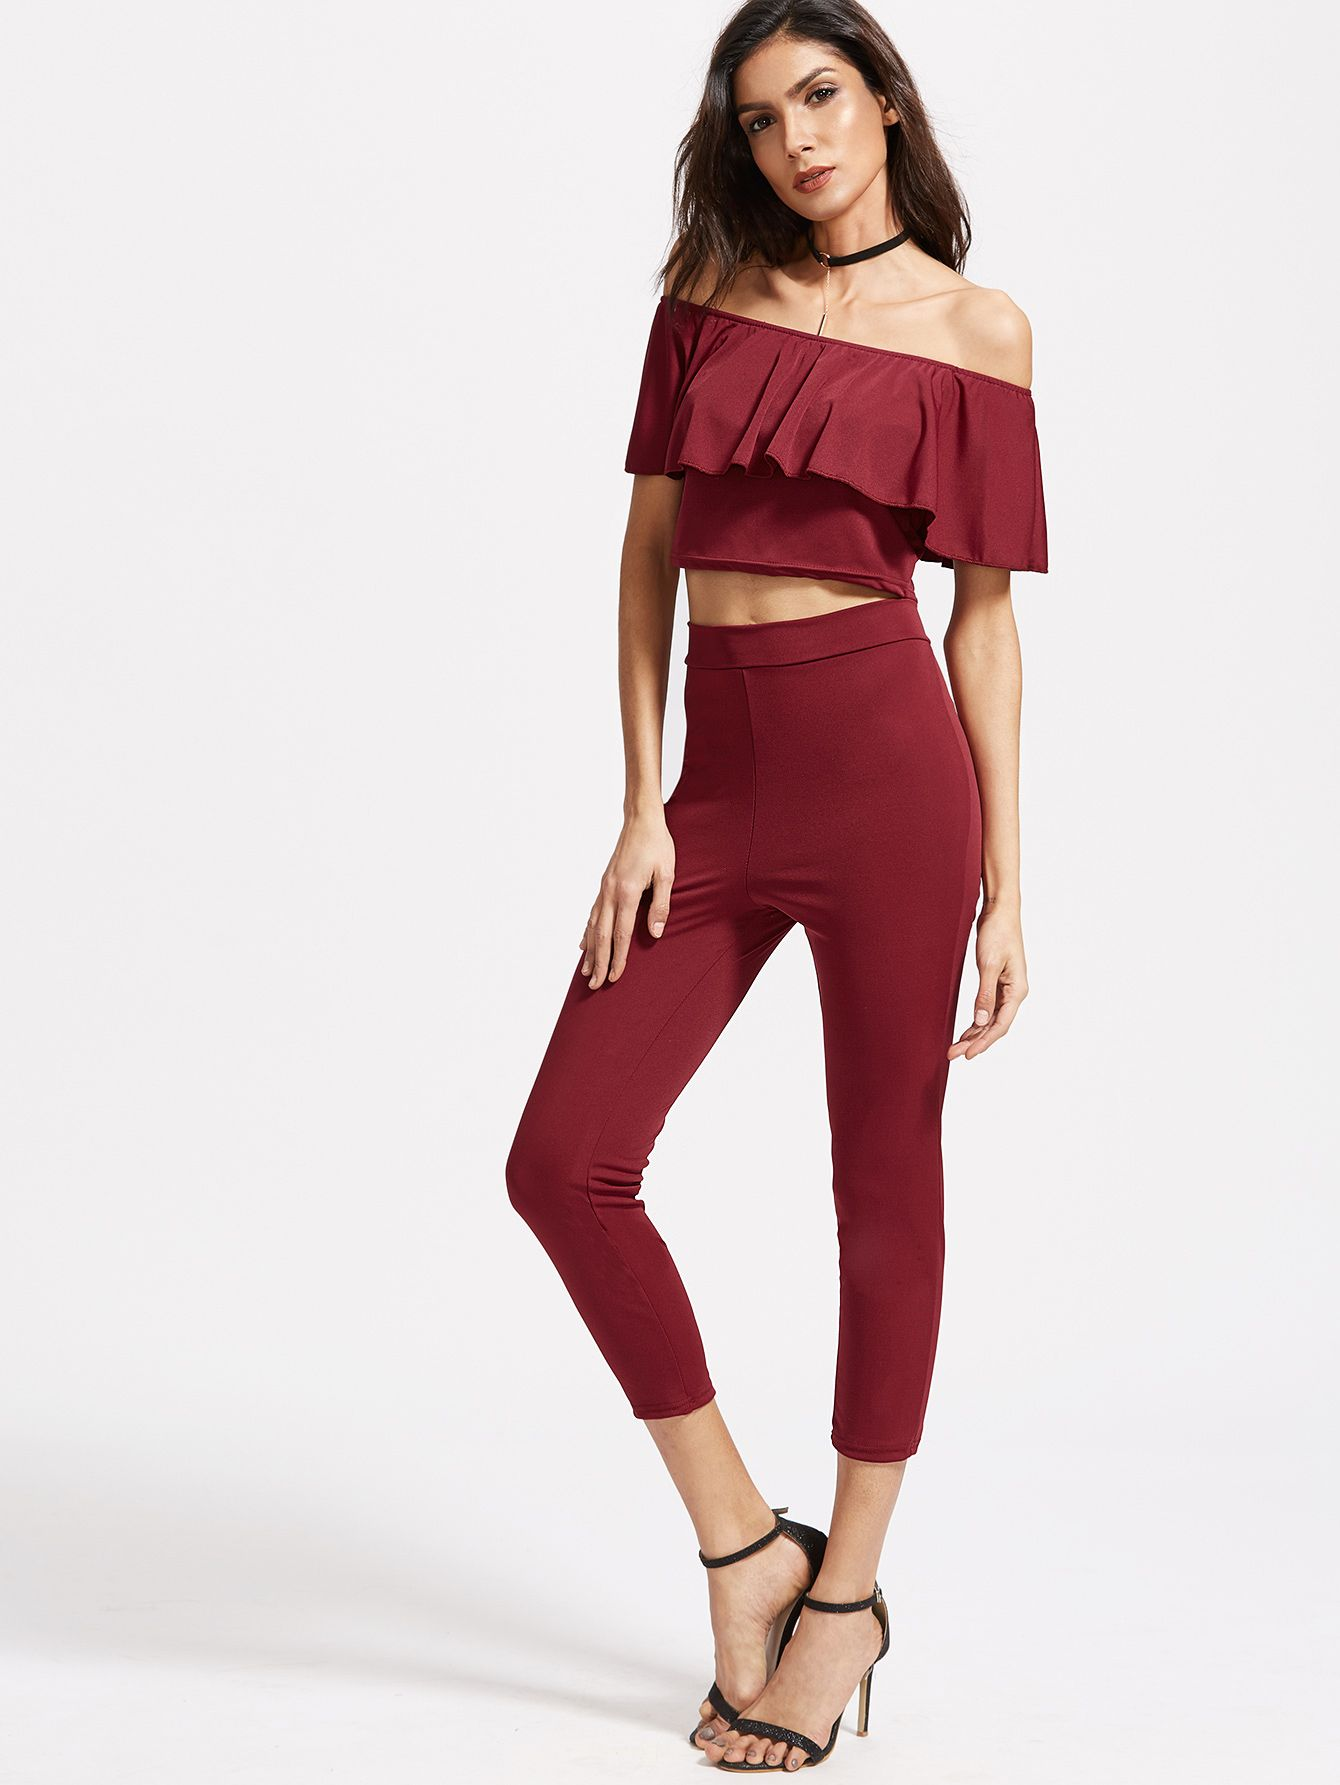 ed4d262d5a1e Shop Burgundy Off The Shoulder Ruffle Trim Top With Pants online. SheIn  offers Burgundy Off The Shoulder Ruffle Trim Top With Pants   more to fit  your ...